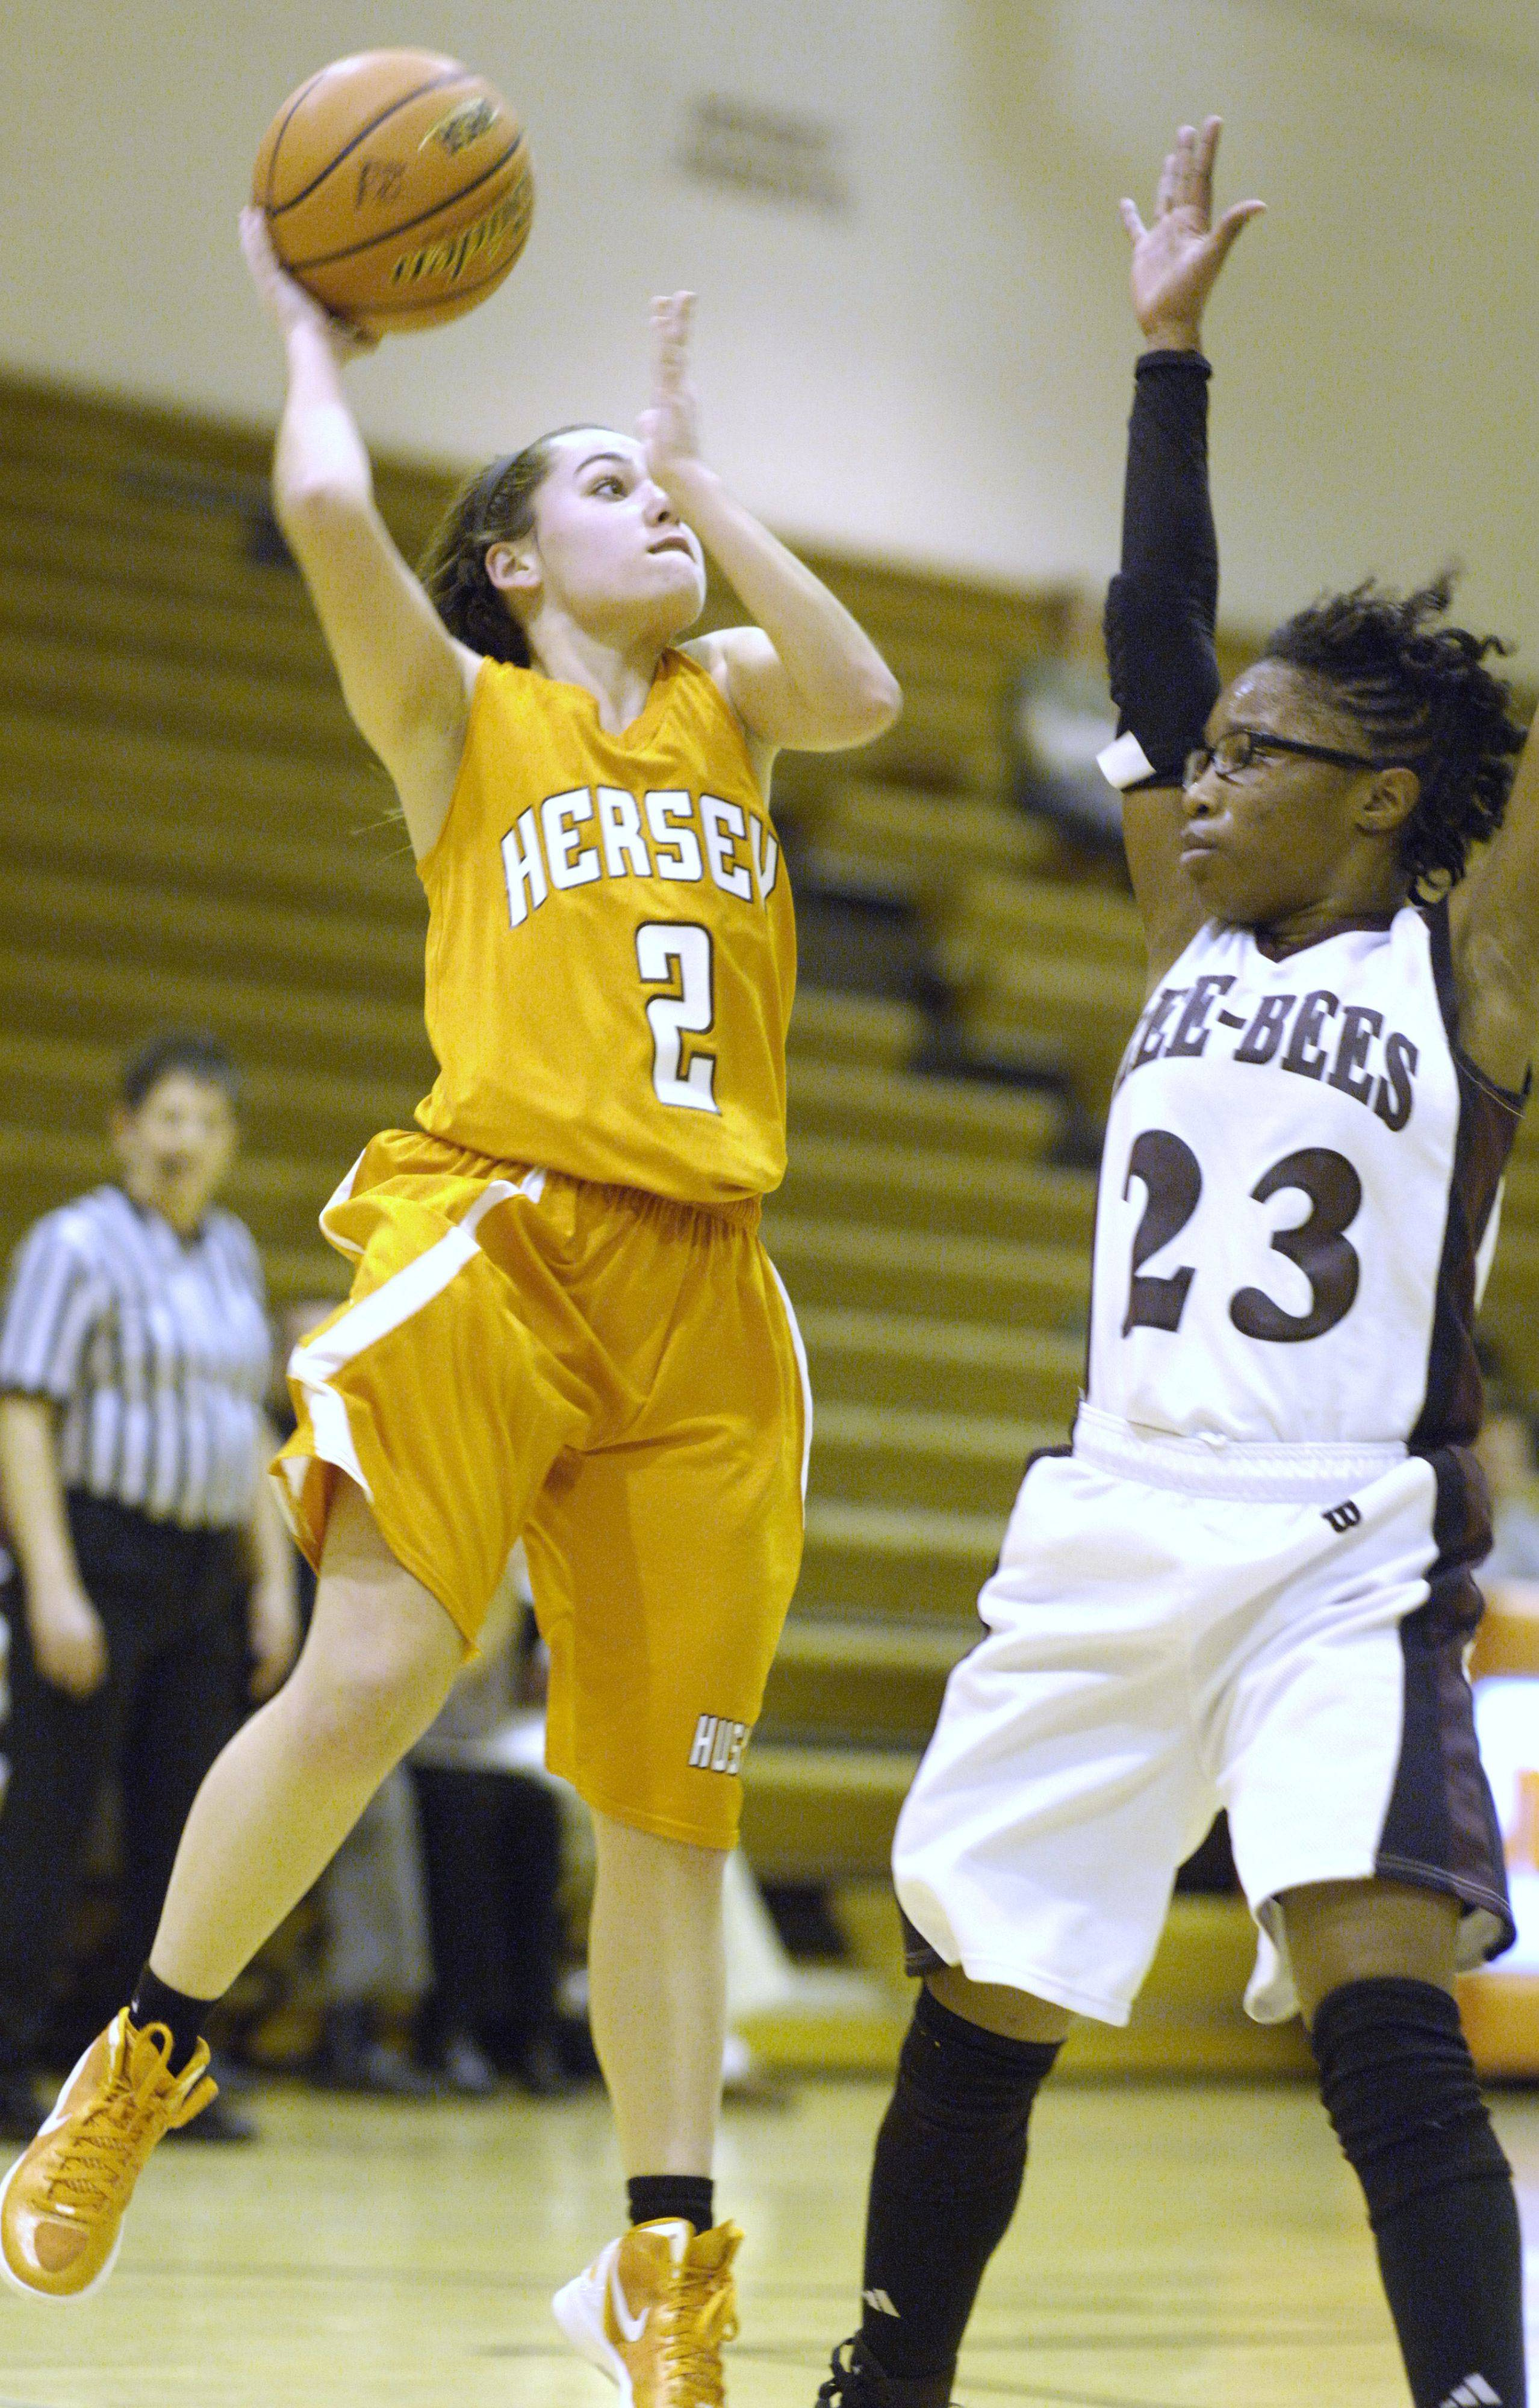 Images from the Hersey vs. Zion-Benton girls basketball regional on Wednesday, February 15th in Arlington Heights.